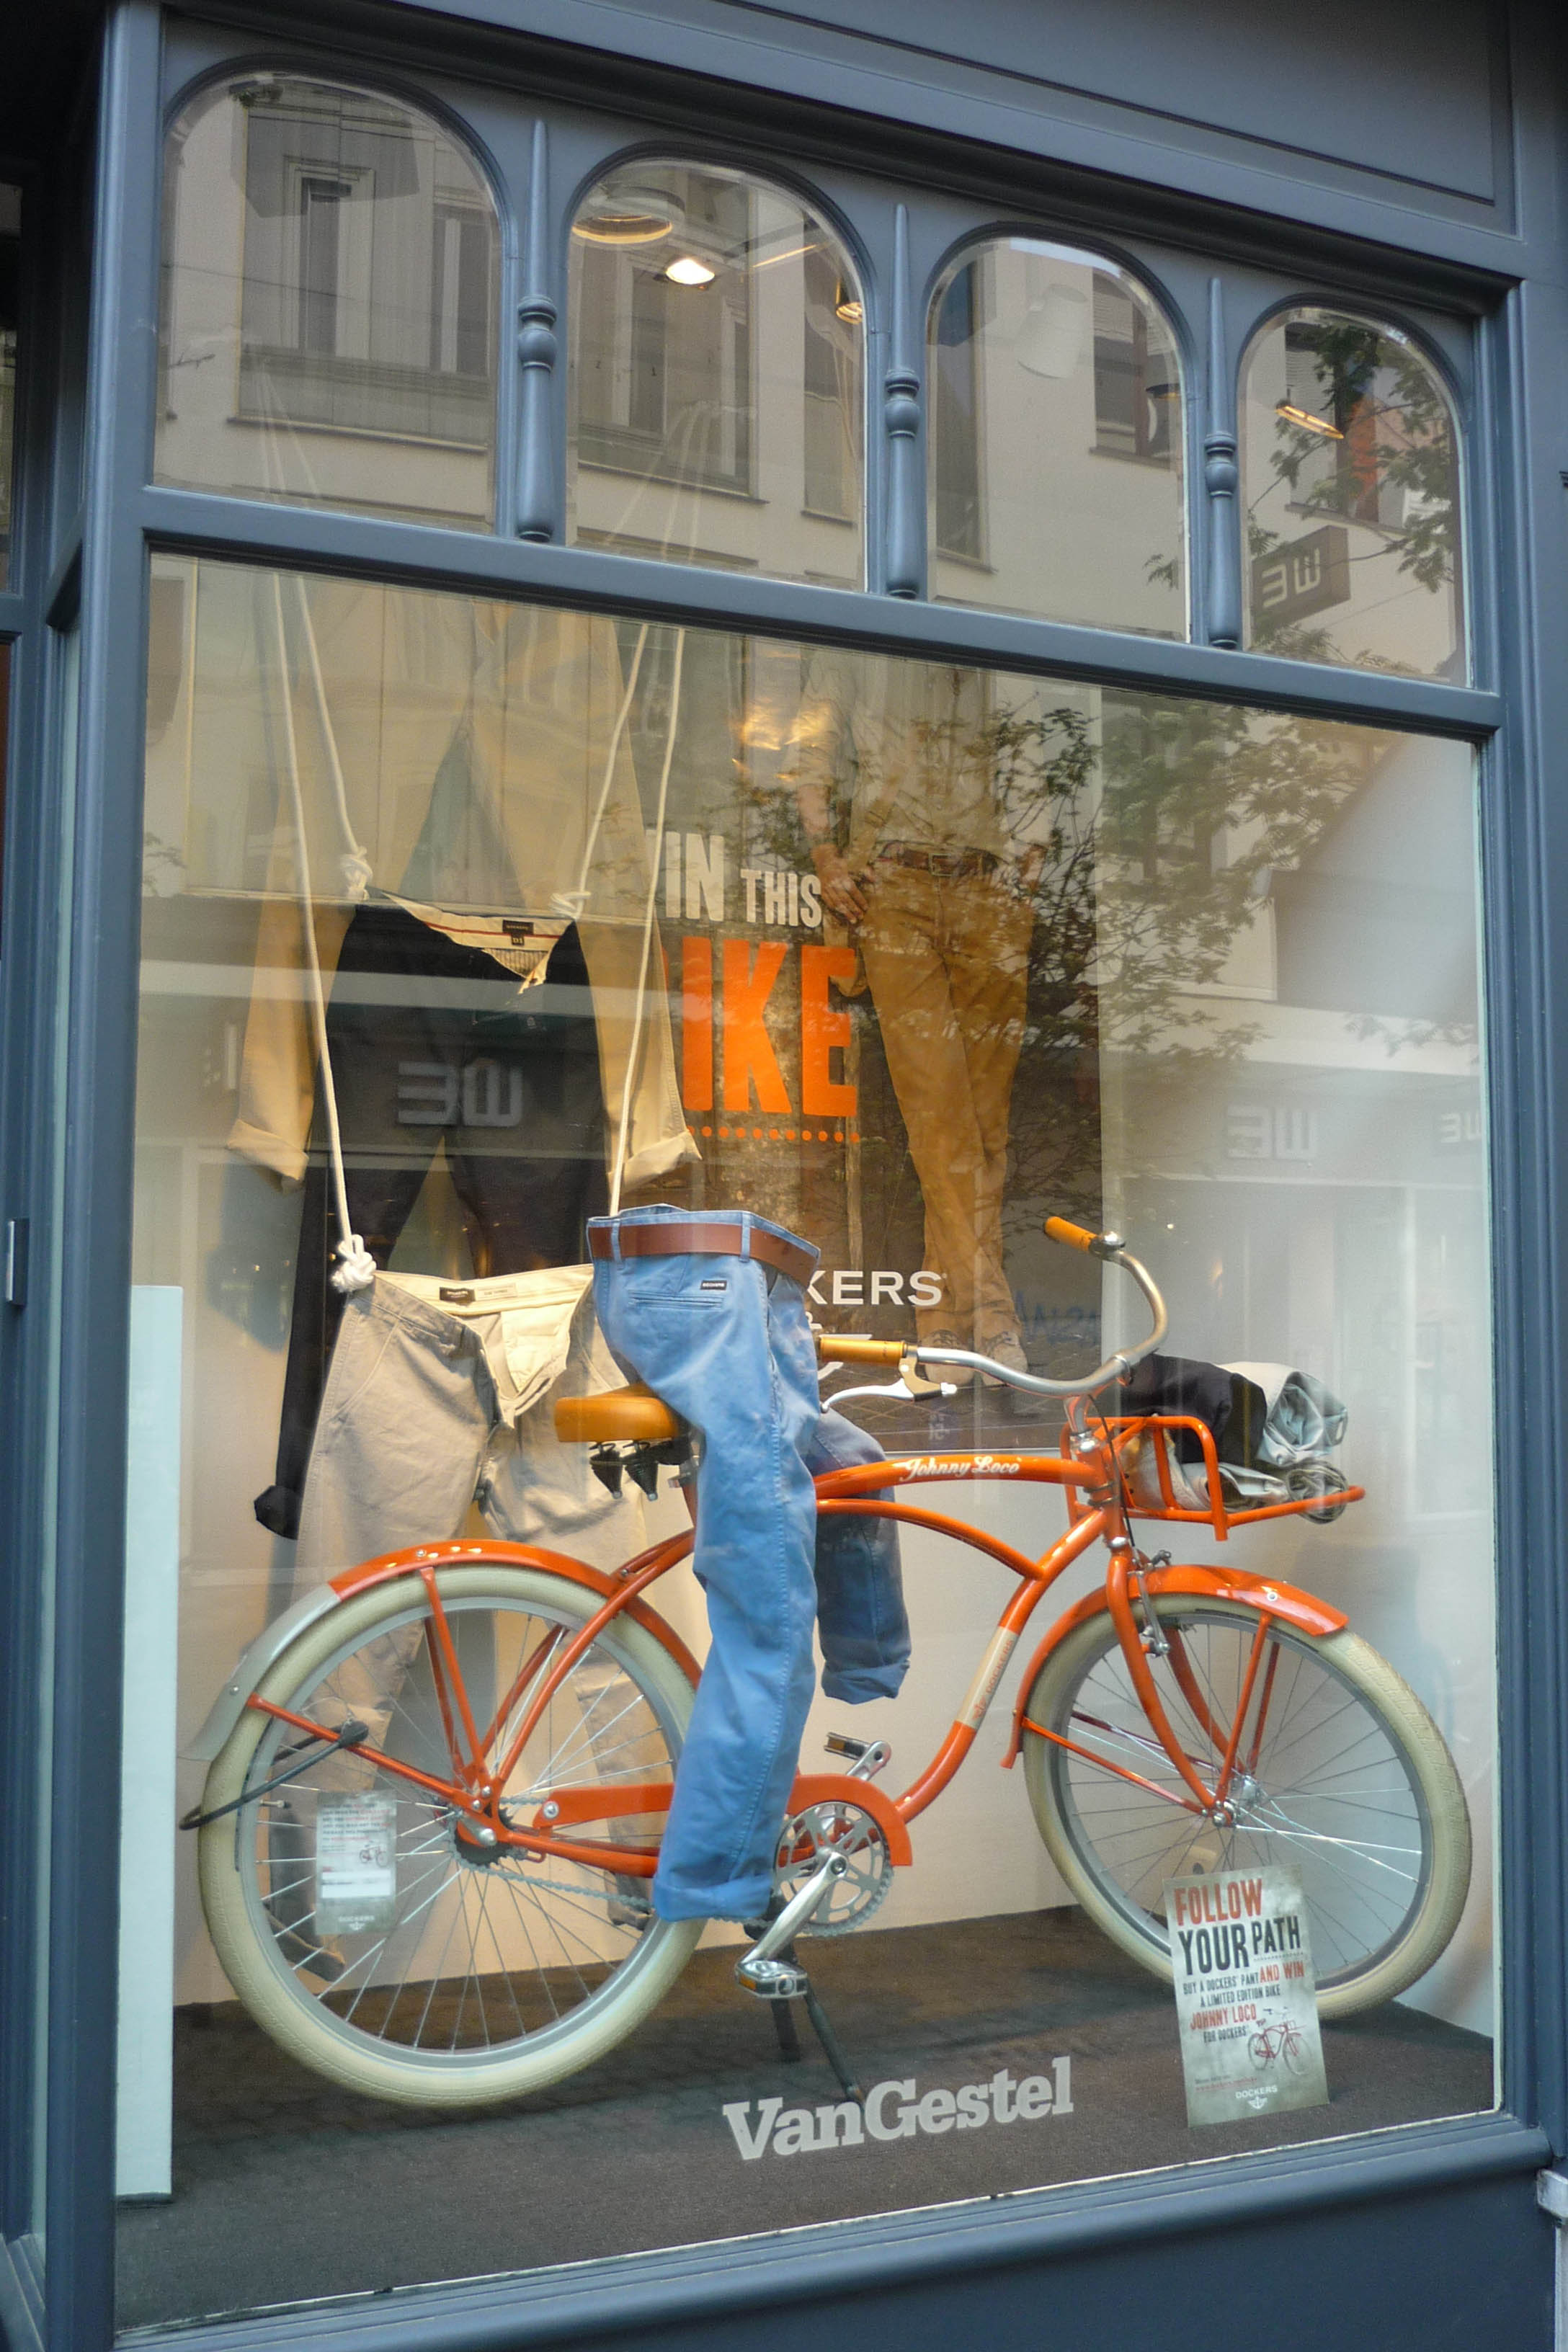 - Dockers PromowindowA window was needed for the promotion of the brand DOCKERS. The briefing was simple:show off the items and combine it with the price you could win. In this case a nice retro bike.